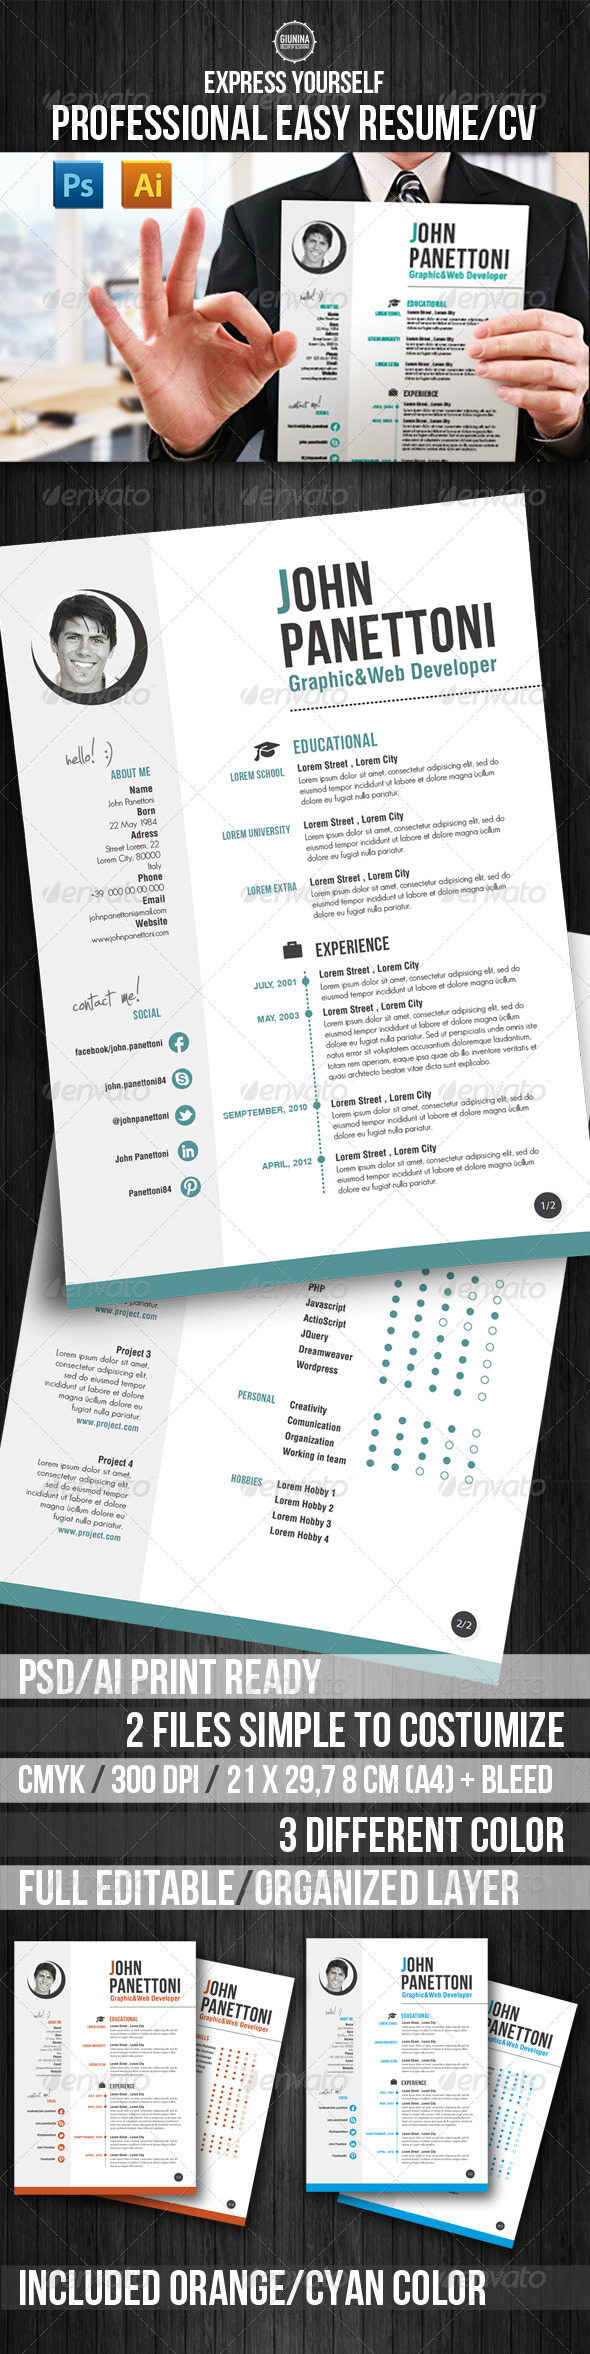 GraphicRiver Professional Easy Resume CV 4915992